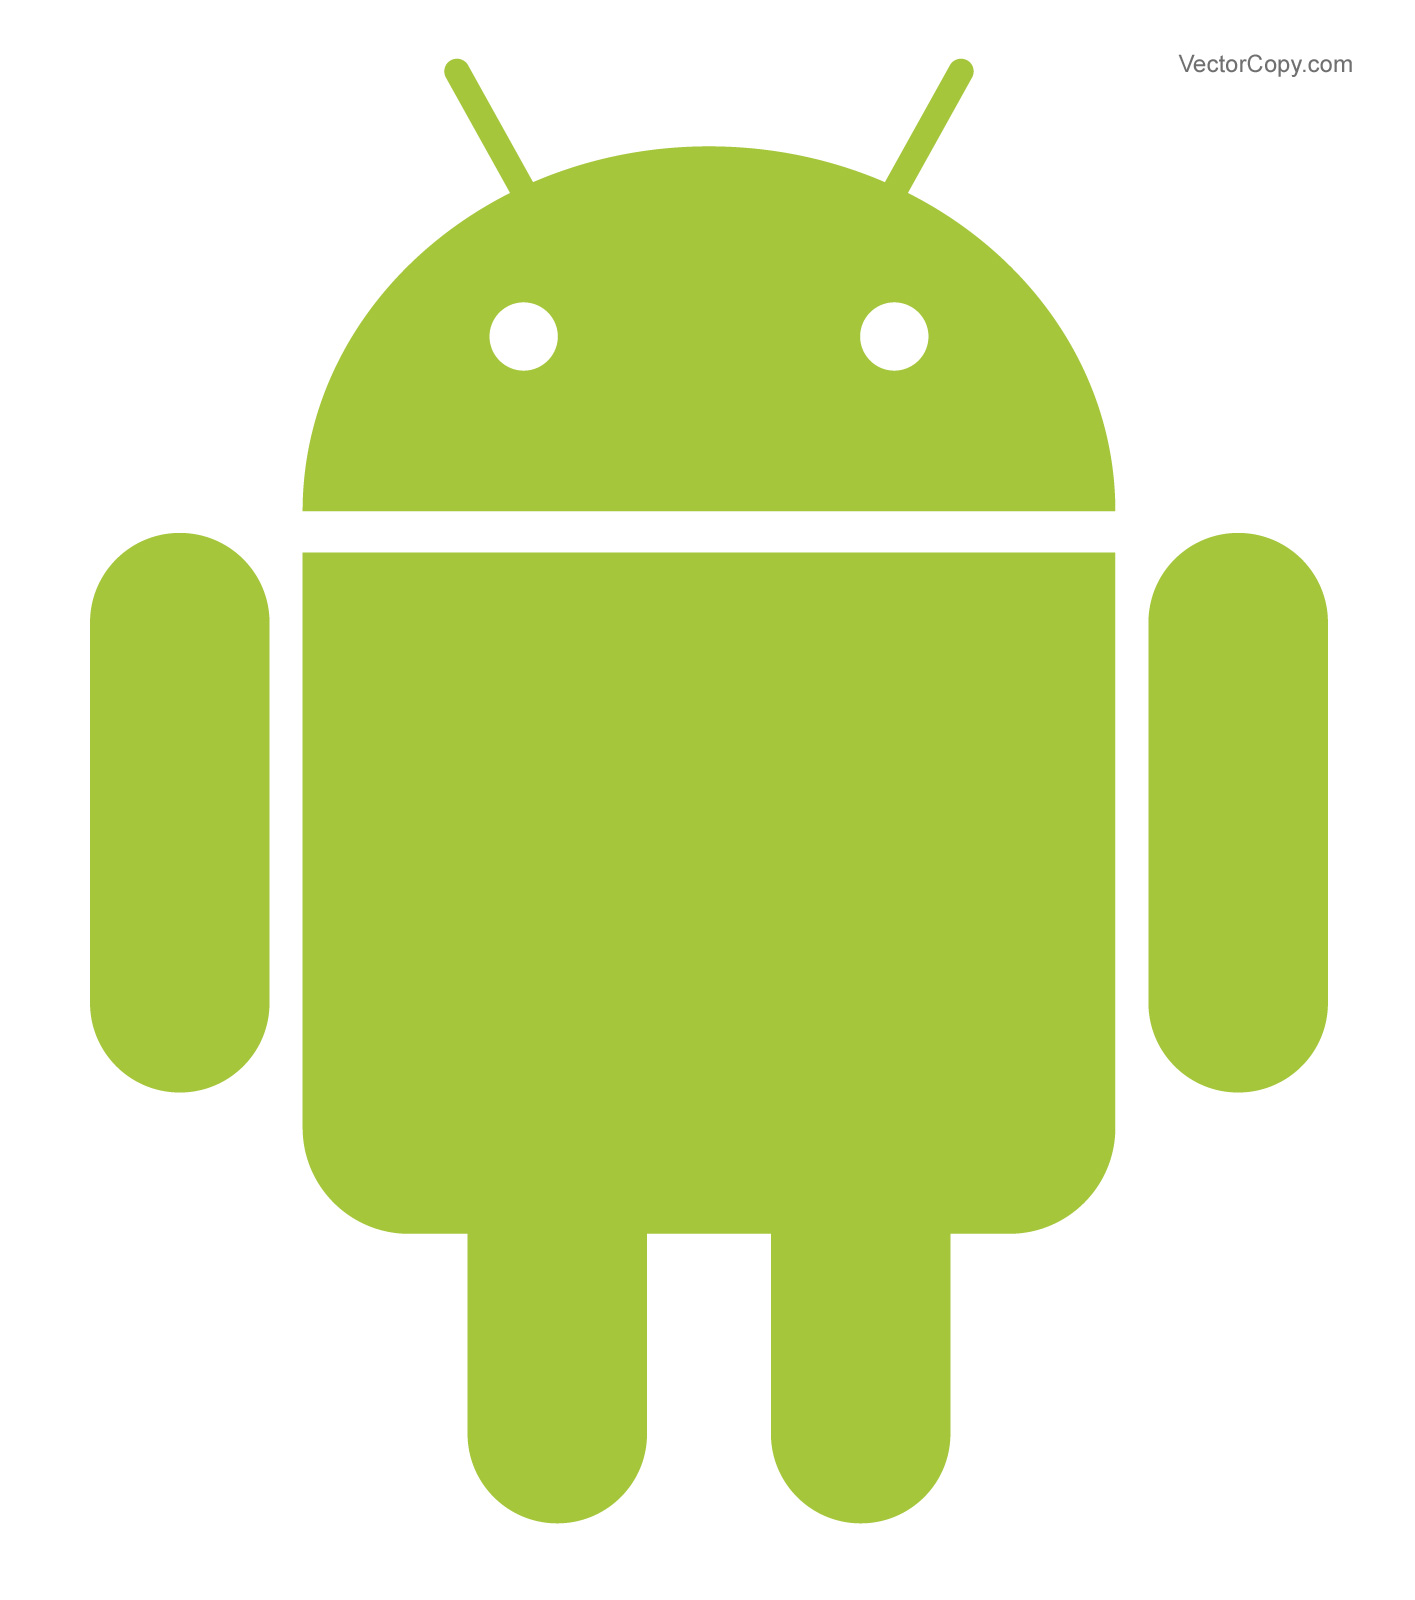 15 Android Icon Vector Images